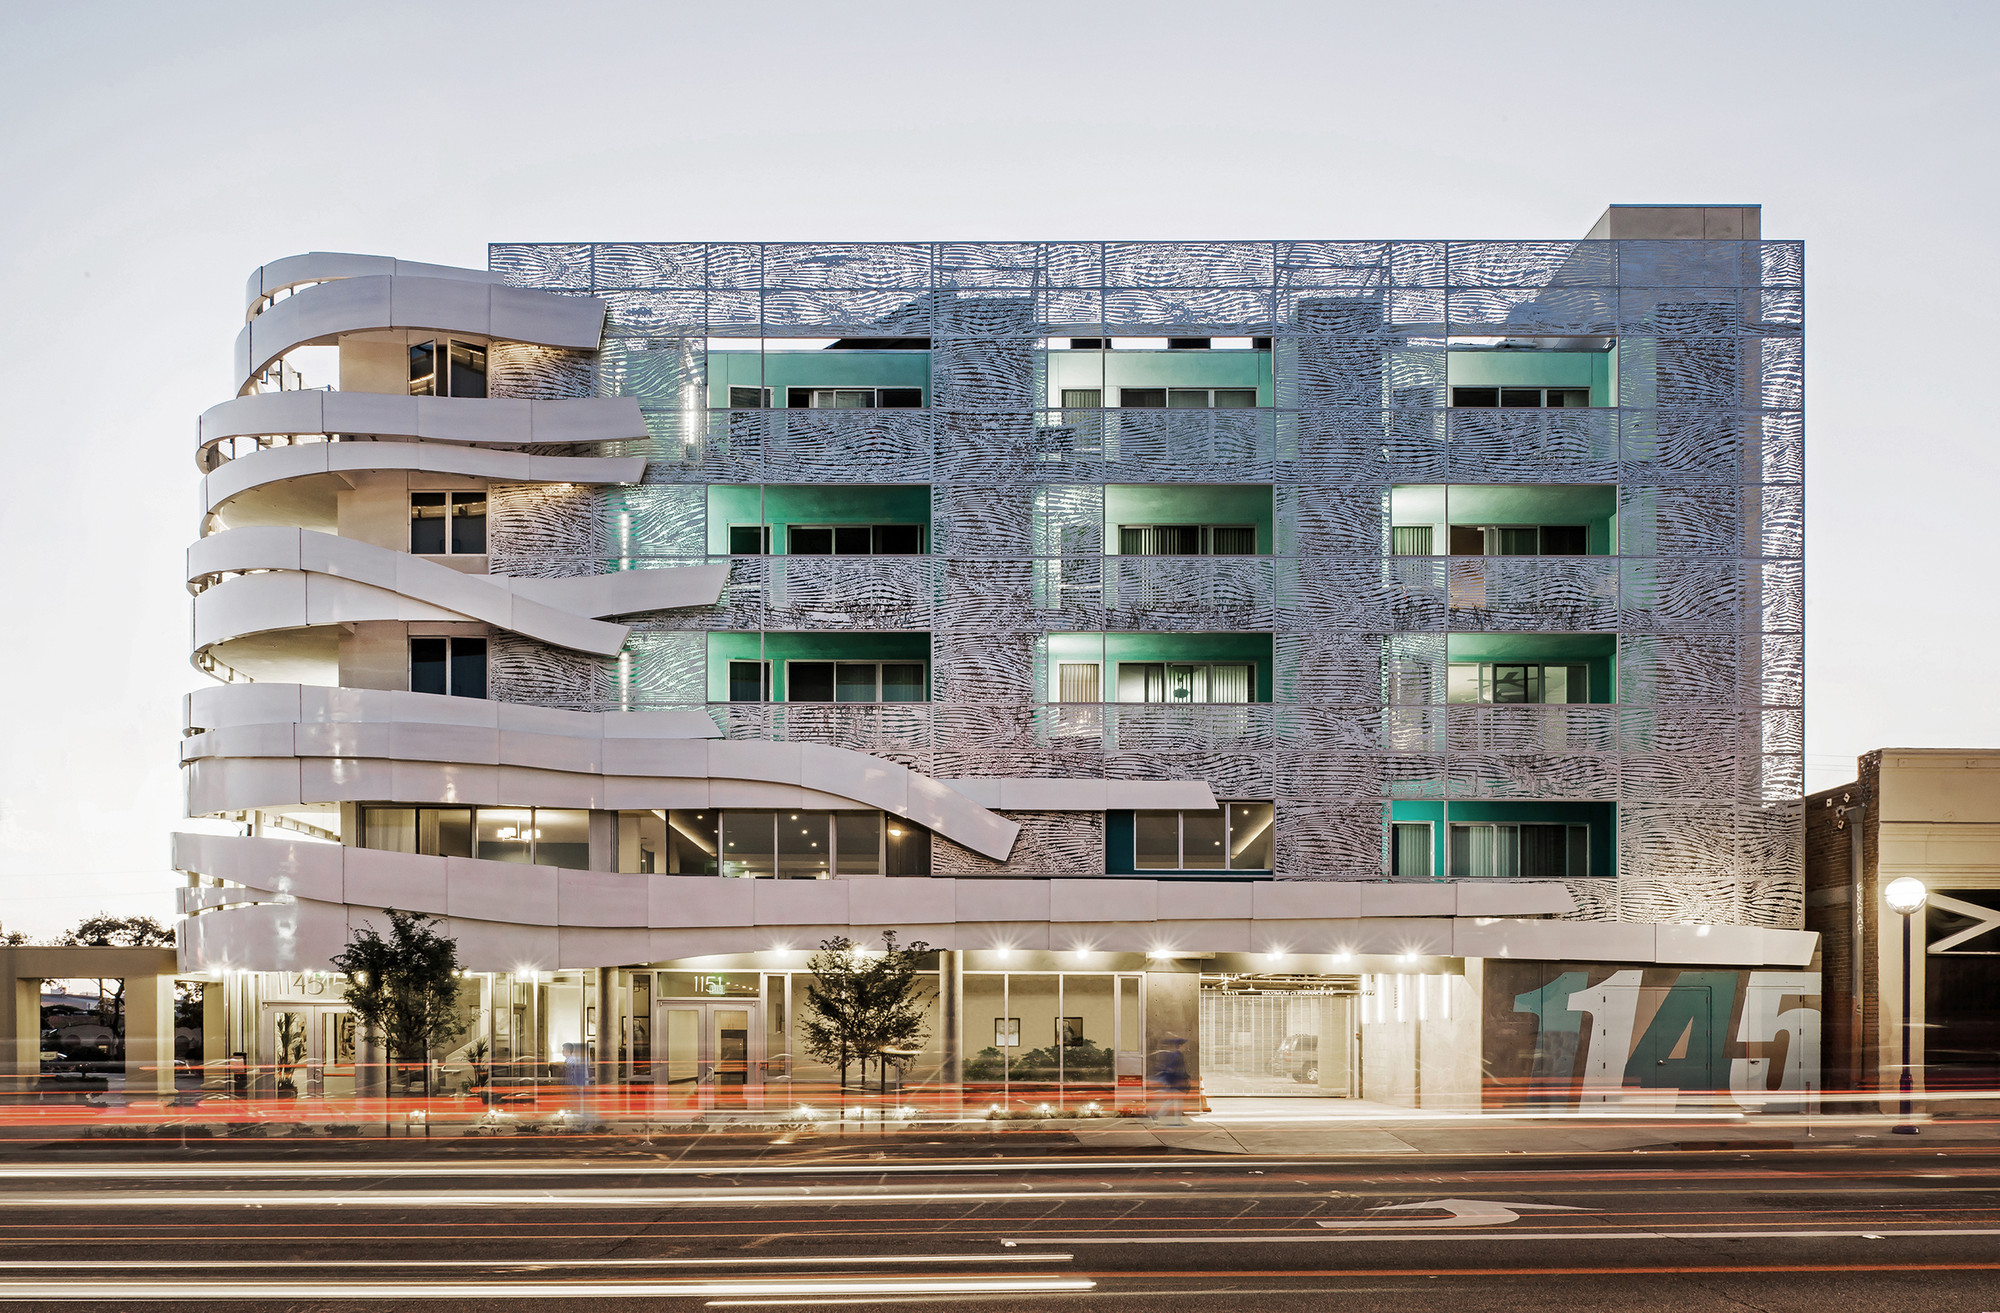 La Brea Affordable Housing / Patrick Tighe + John V. Mutlow, © Patrick Tighe Architecture / Bran Arifin